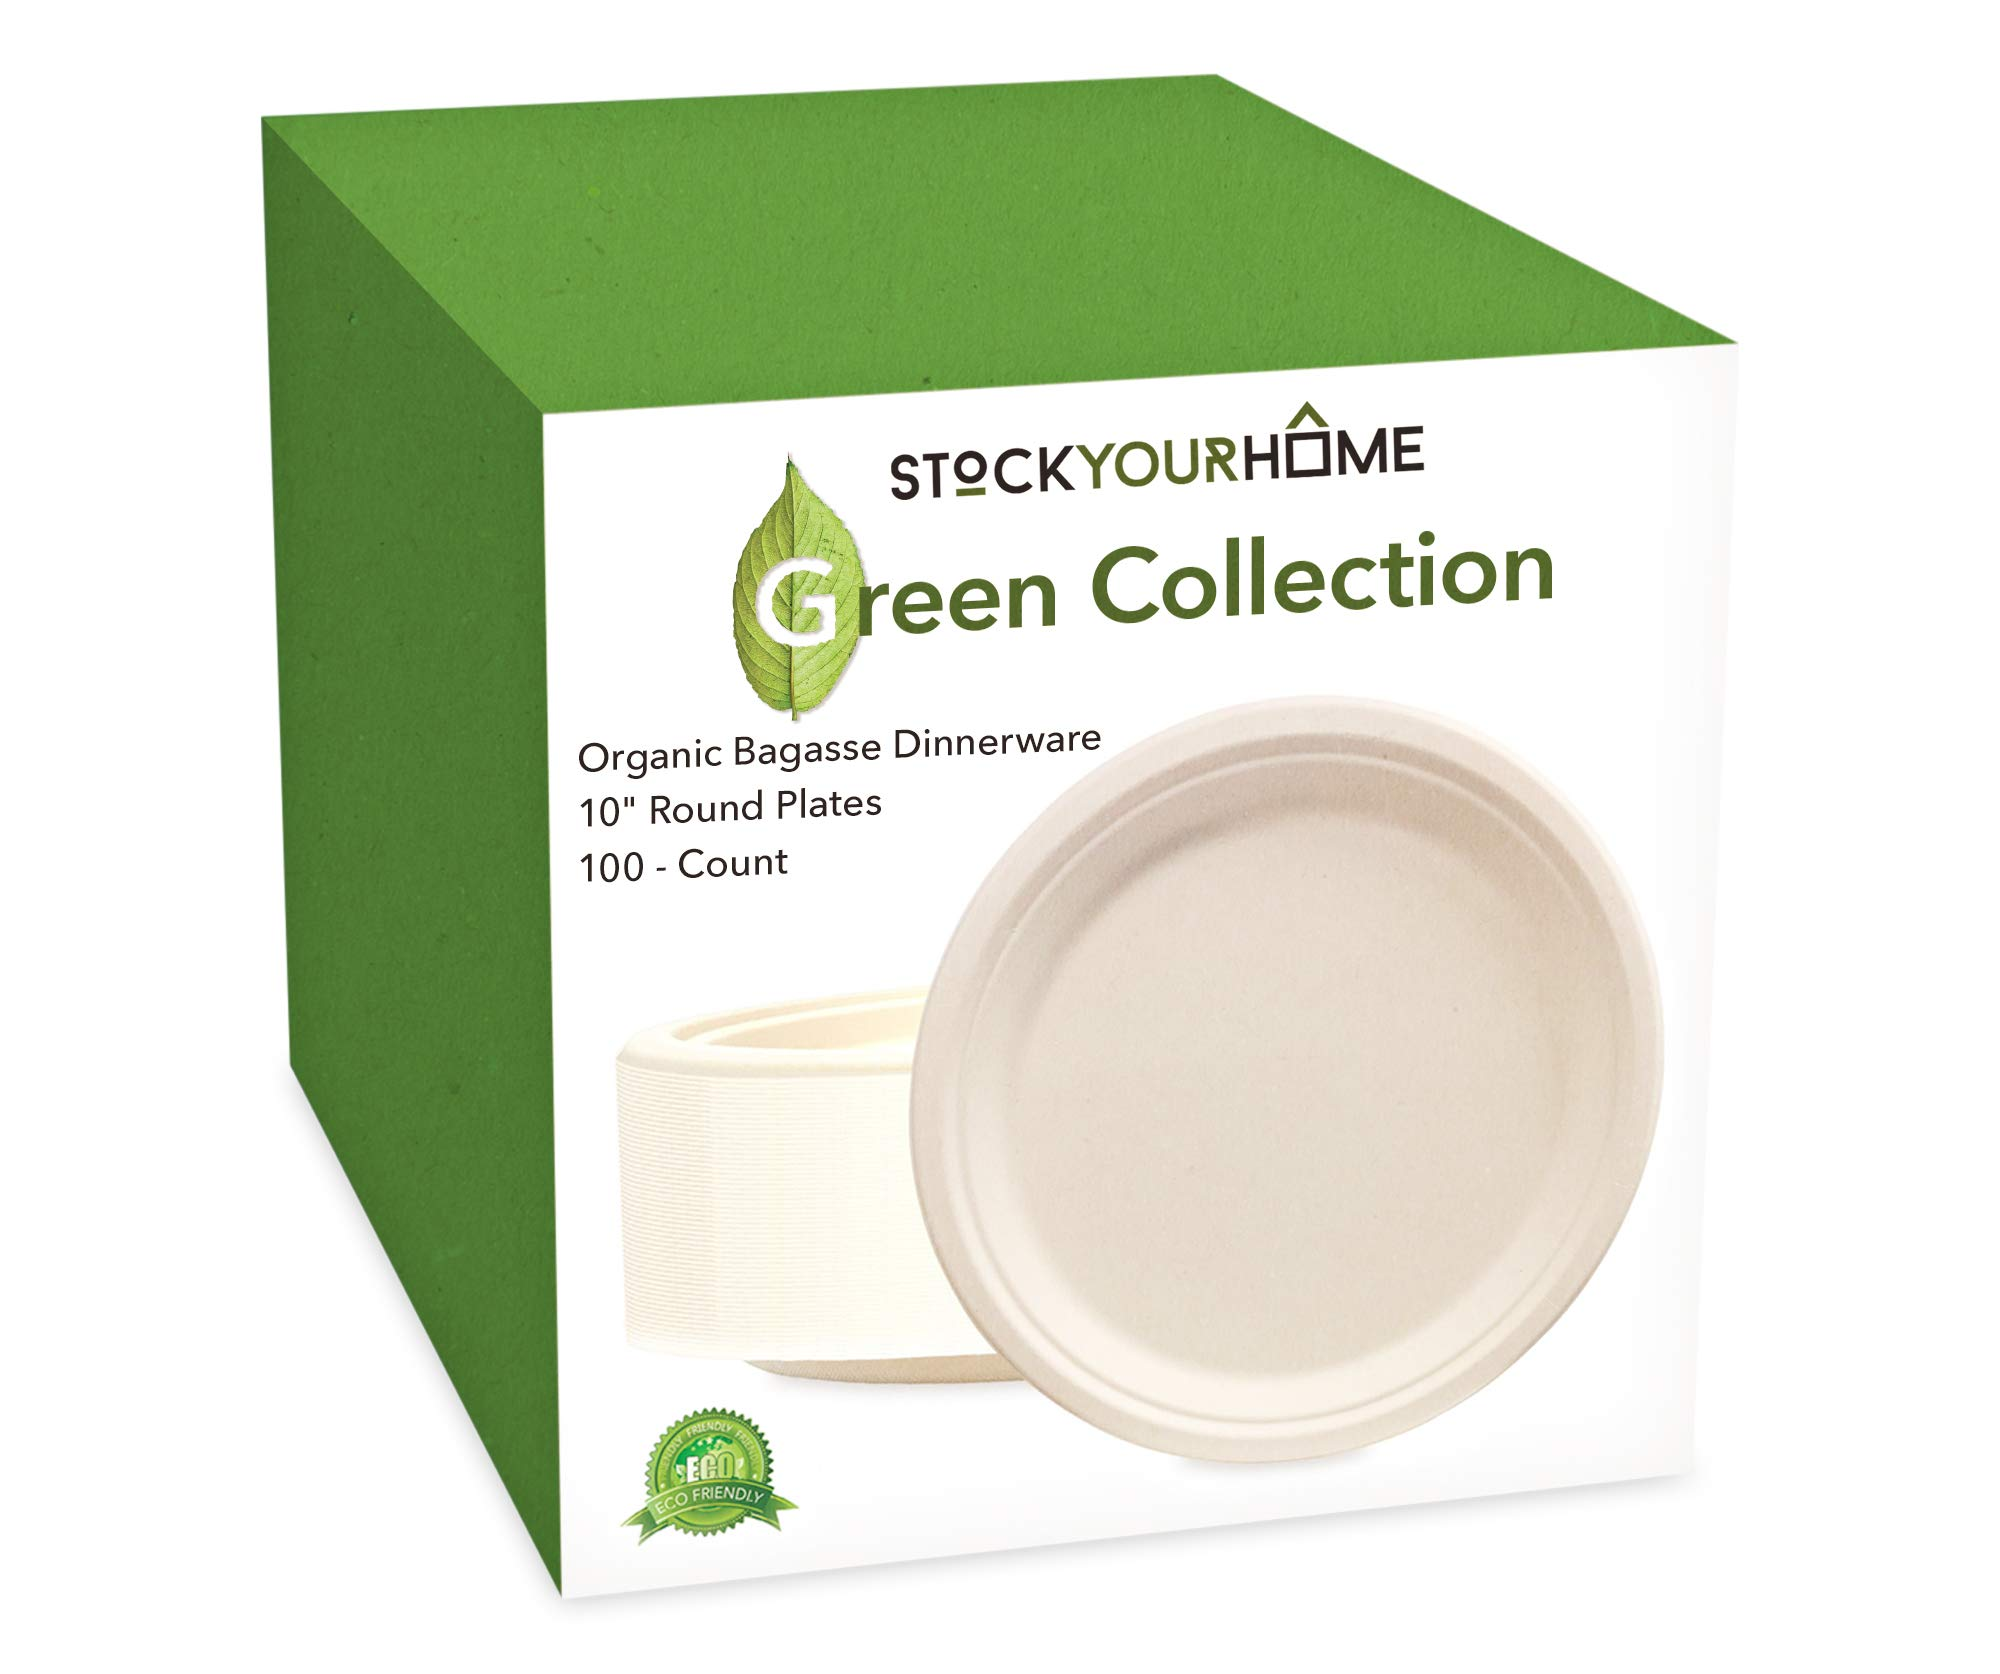 100 Pack of 10'' Round Organic Bagasse Plates Ecofriendly Disposable Dinner Plates for Picnic, Party, Catering & Everyday Use - Stock Your Home